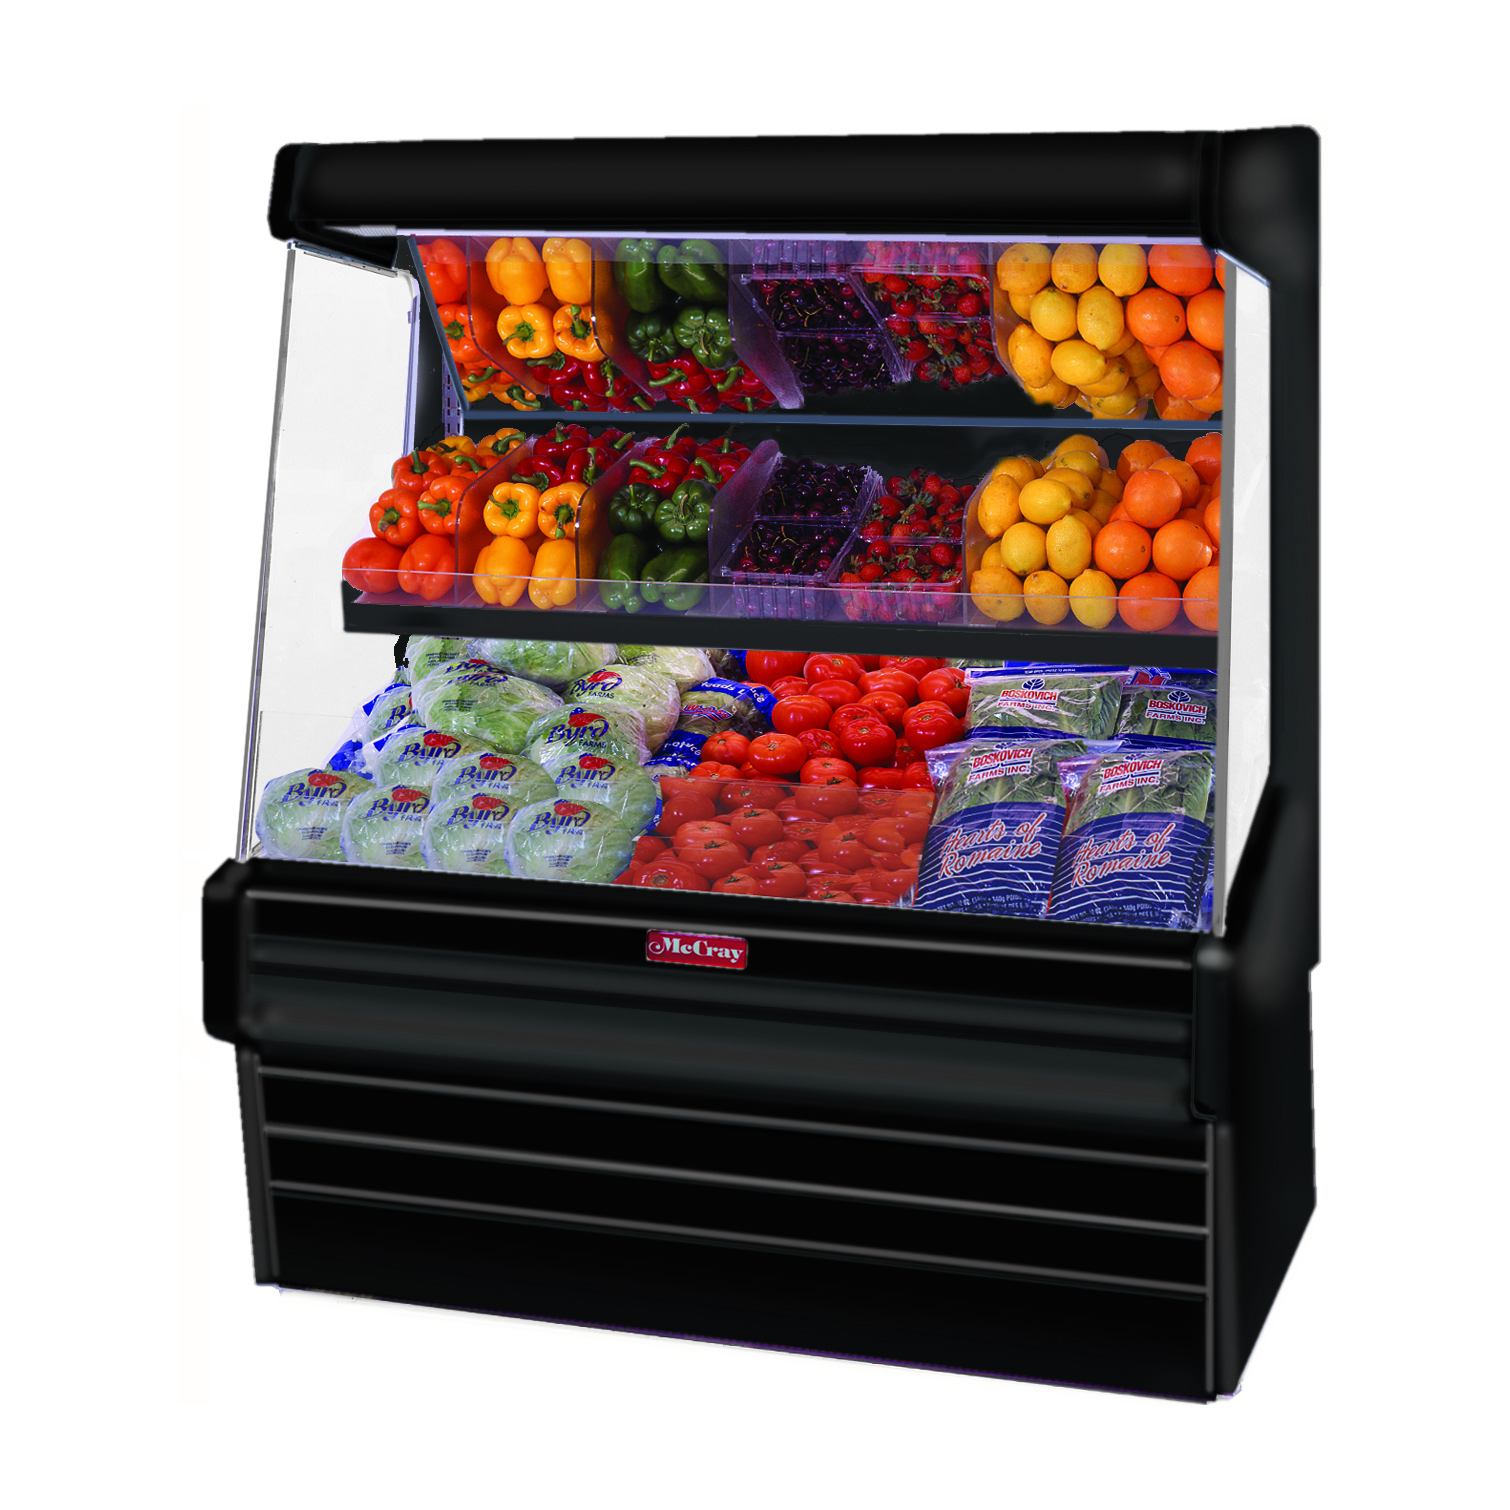 Howard-McCray R-OP30E-8L-B-LED display case, produce